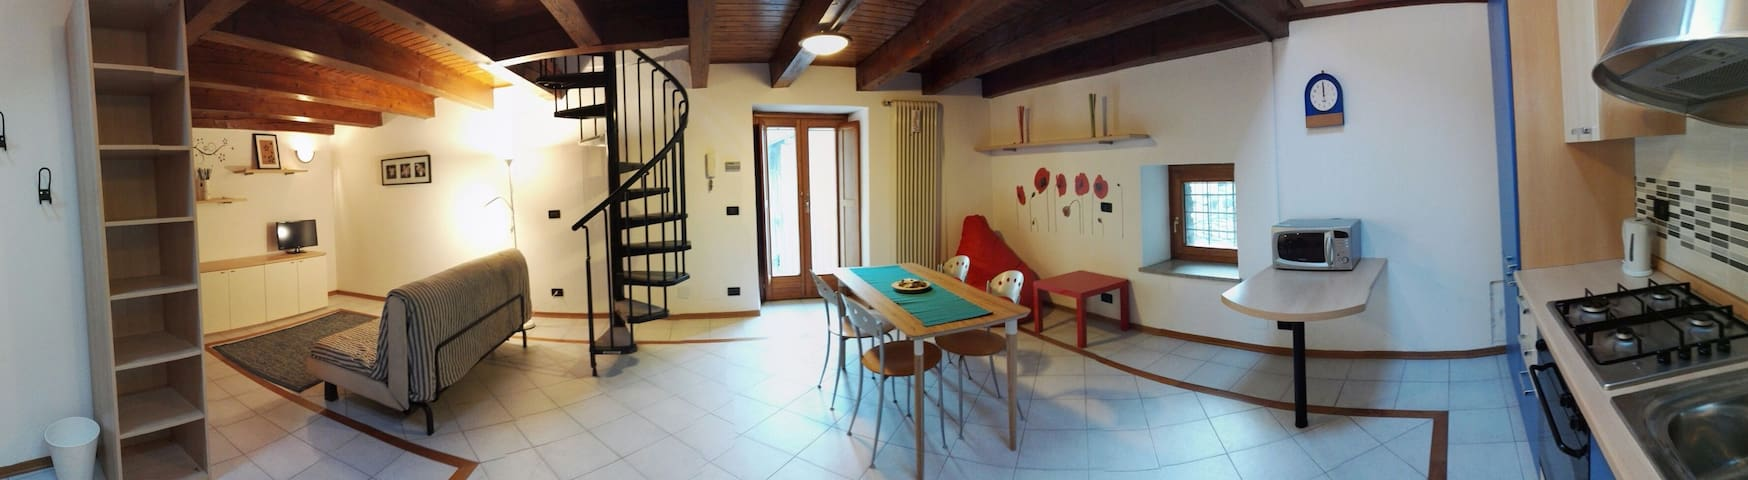 "Appartamento ""La Tor"" a Donnas - Donnas, Valle d'Aosta, IT - Wohnung"